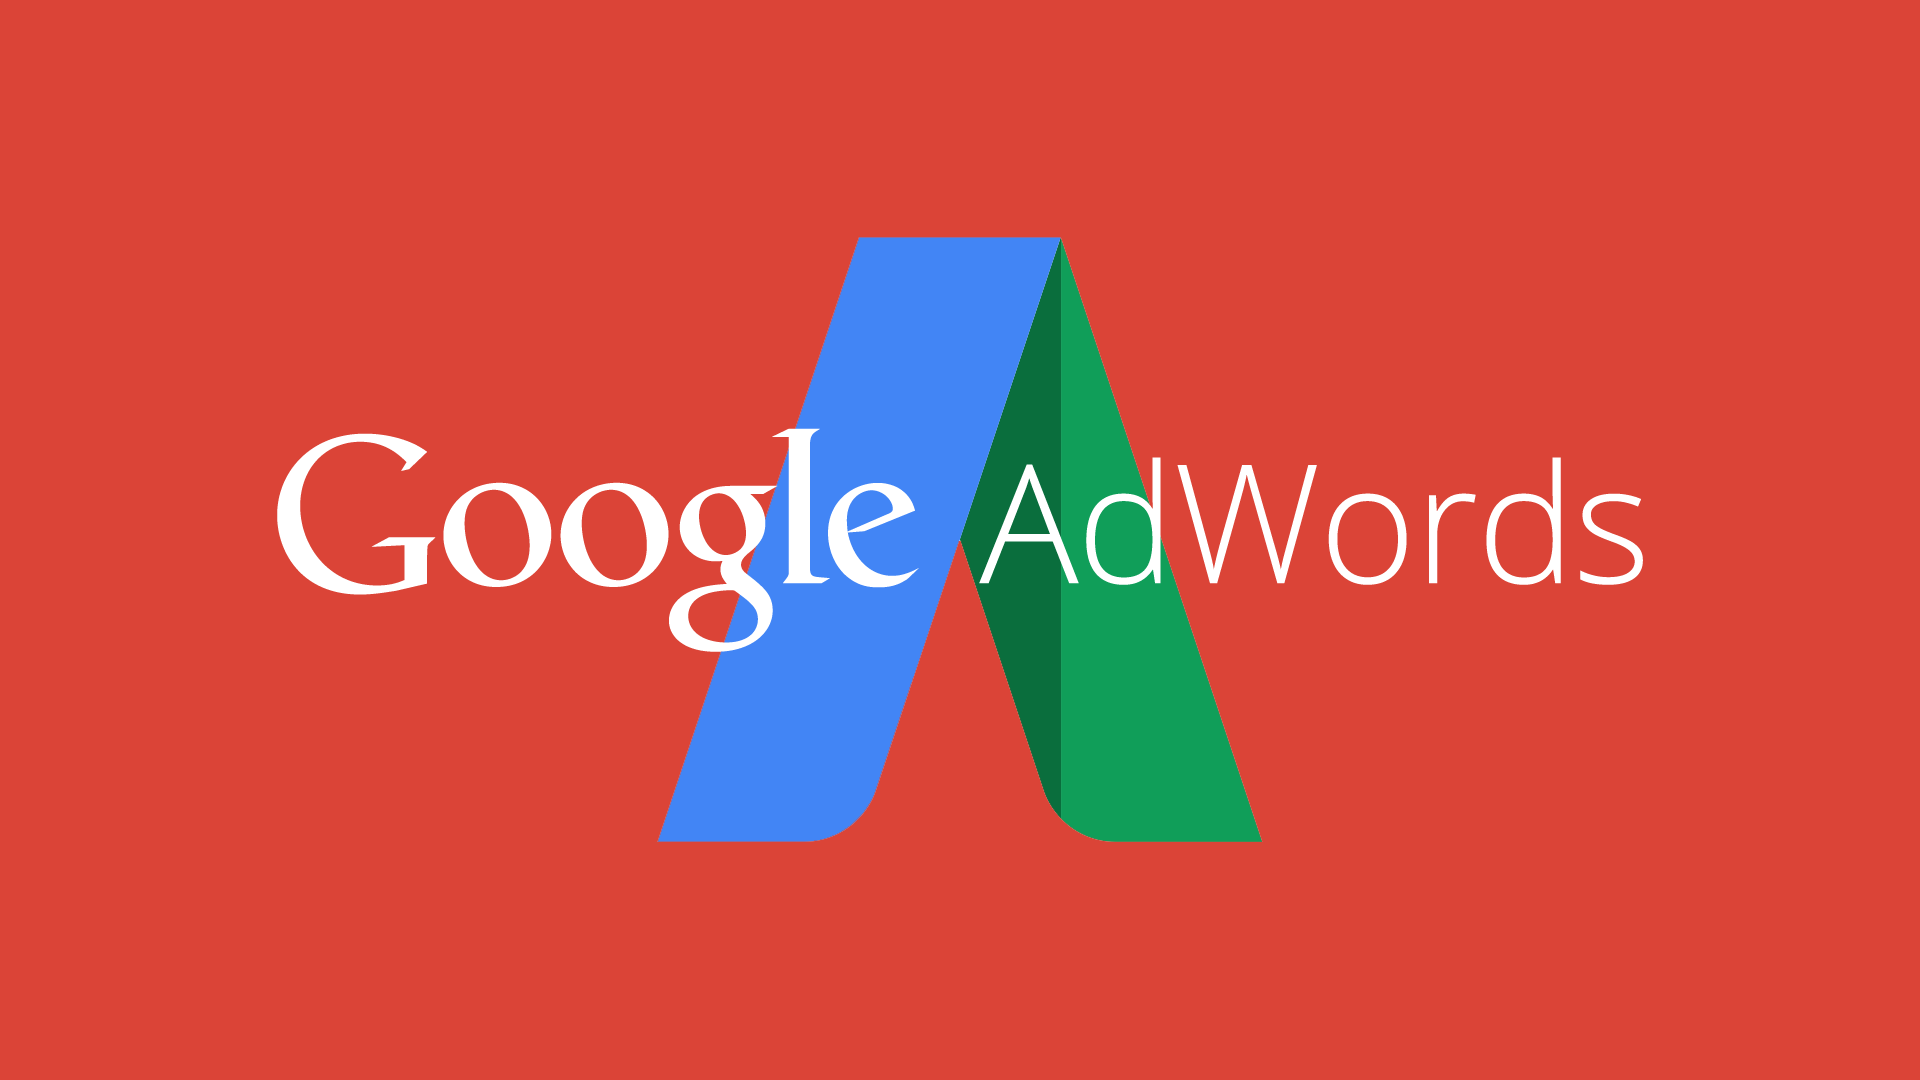 Image result for Google Adwords hd